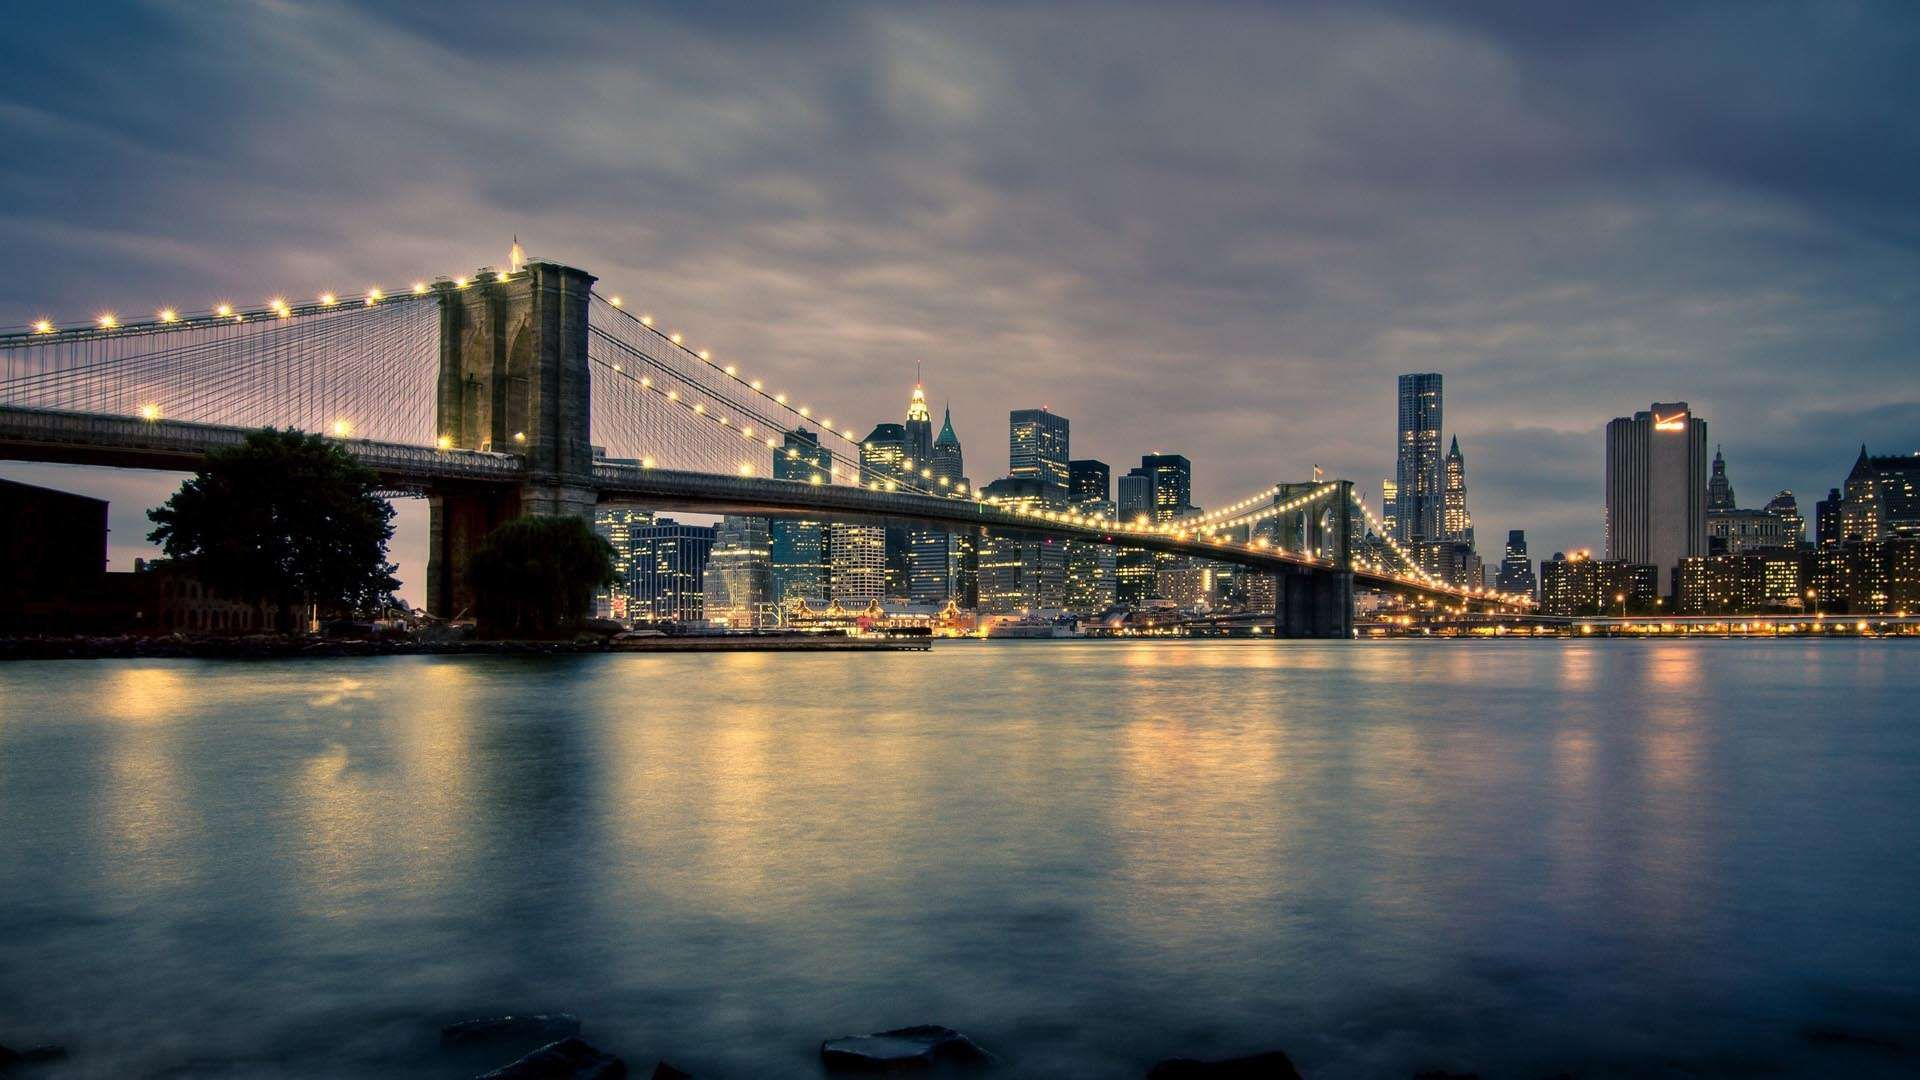 Brooklyn Bridge At Night New York United States USA city